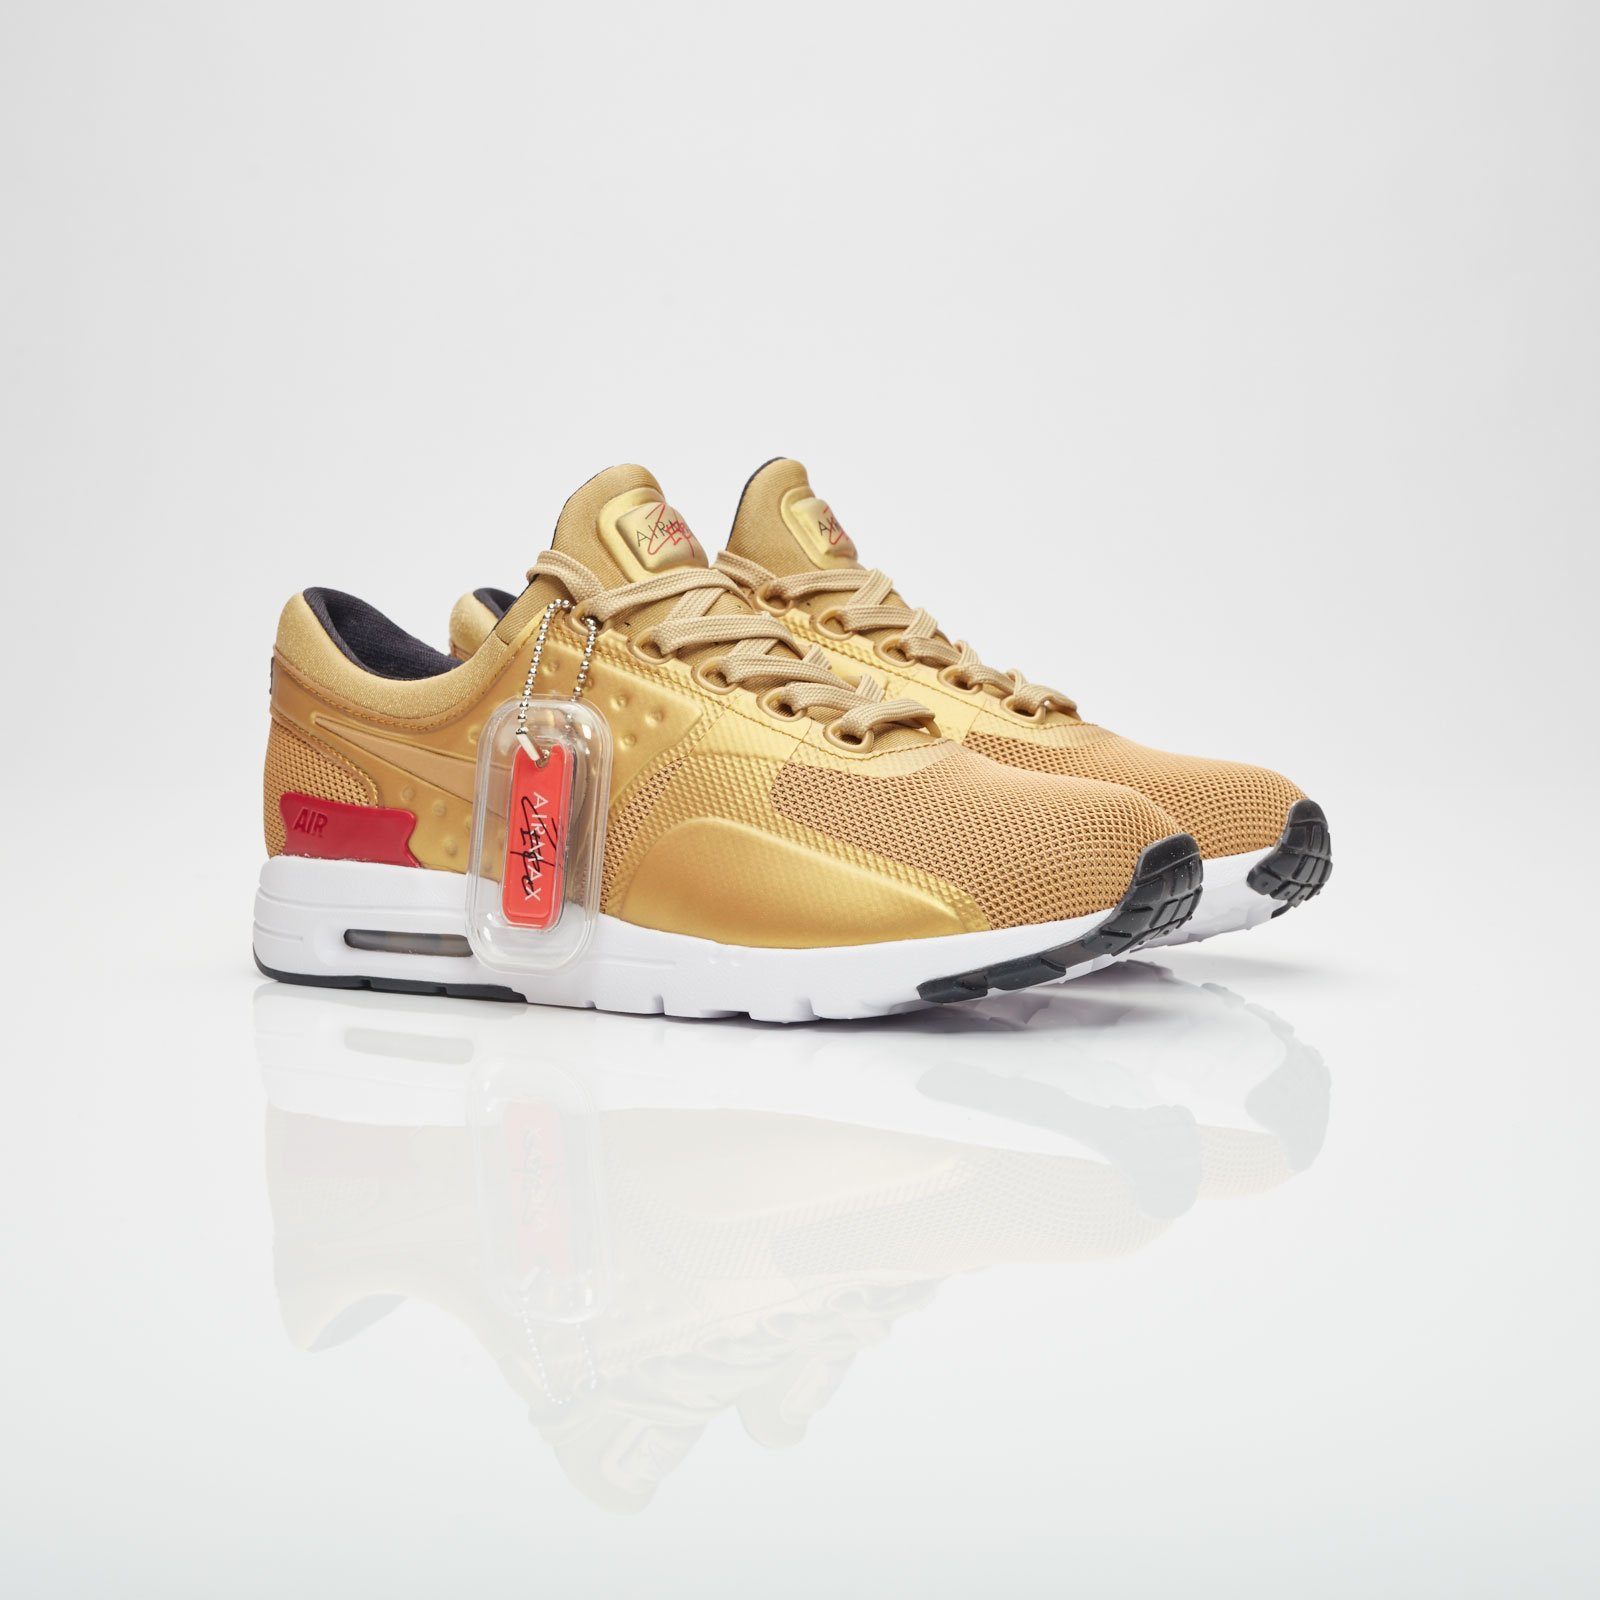 26a8e67797 Nike Wmns Air Max Zero QS - 863700-700 - Sneakersnstuff | sneakers ...